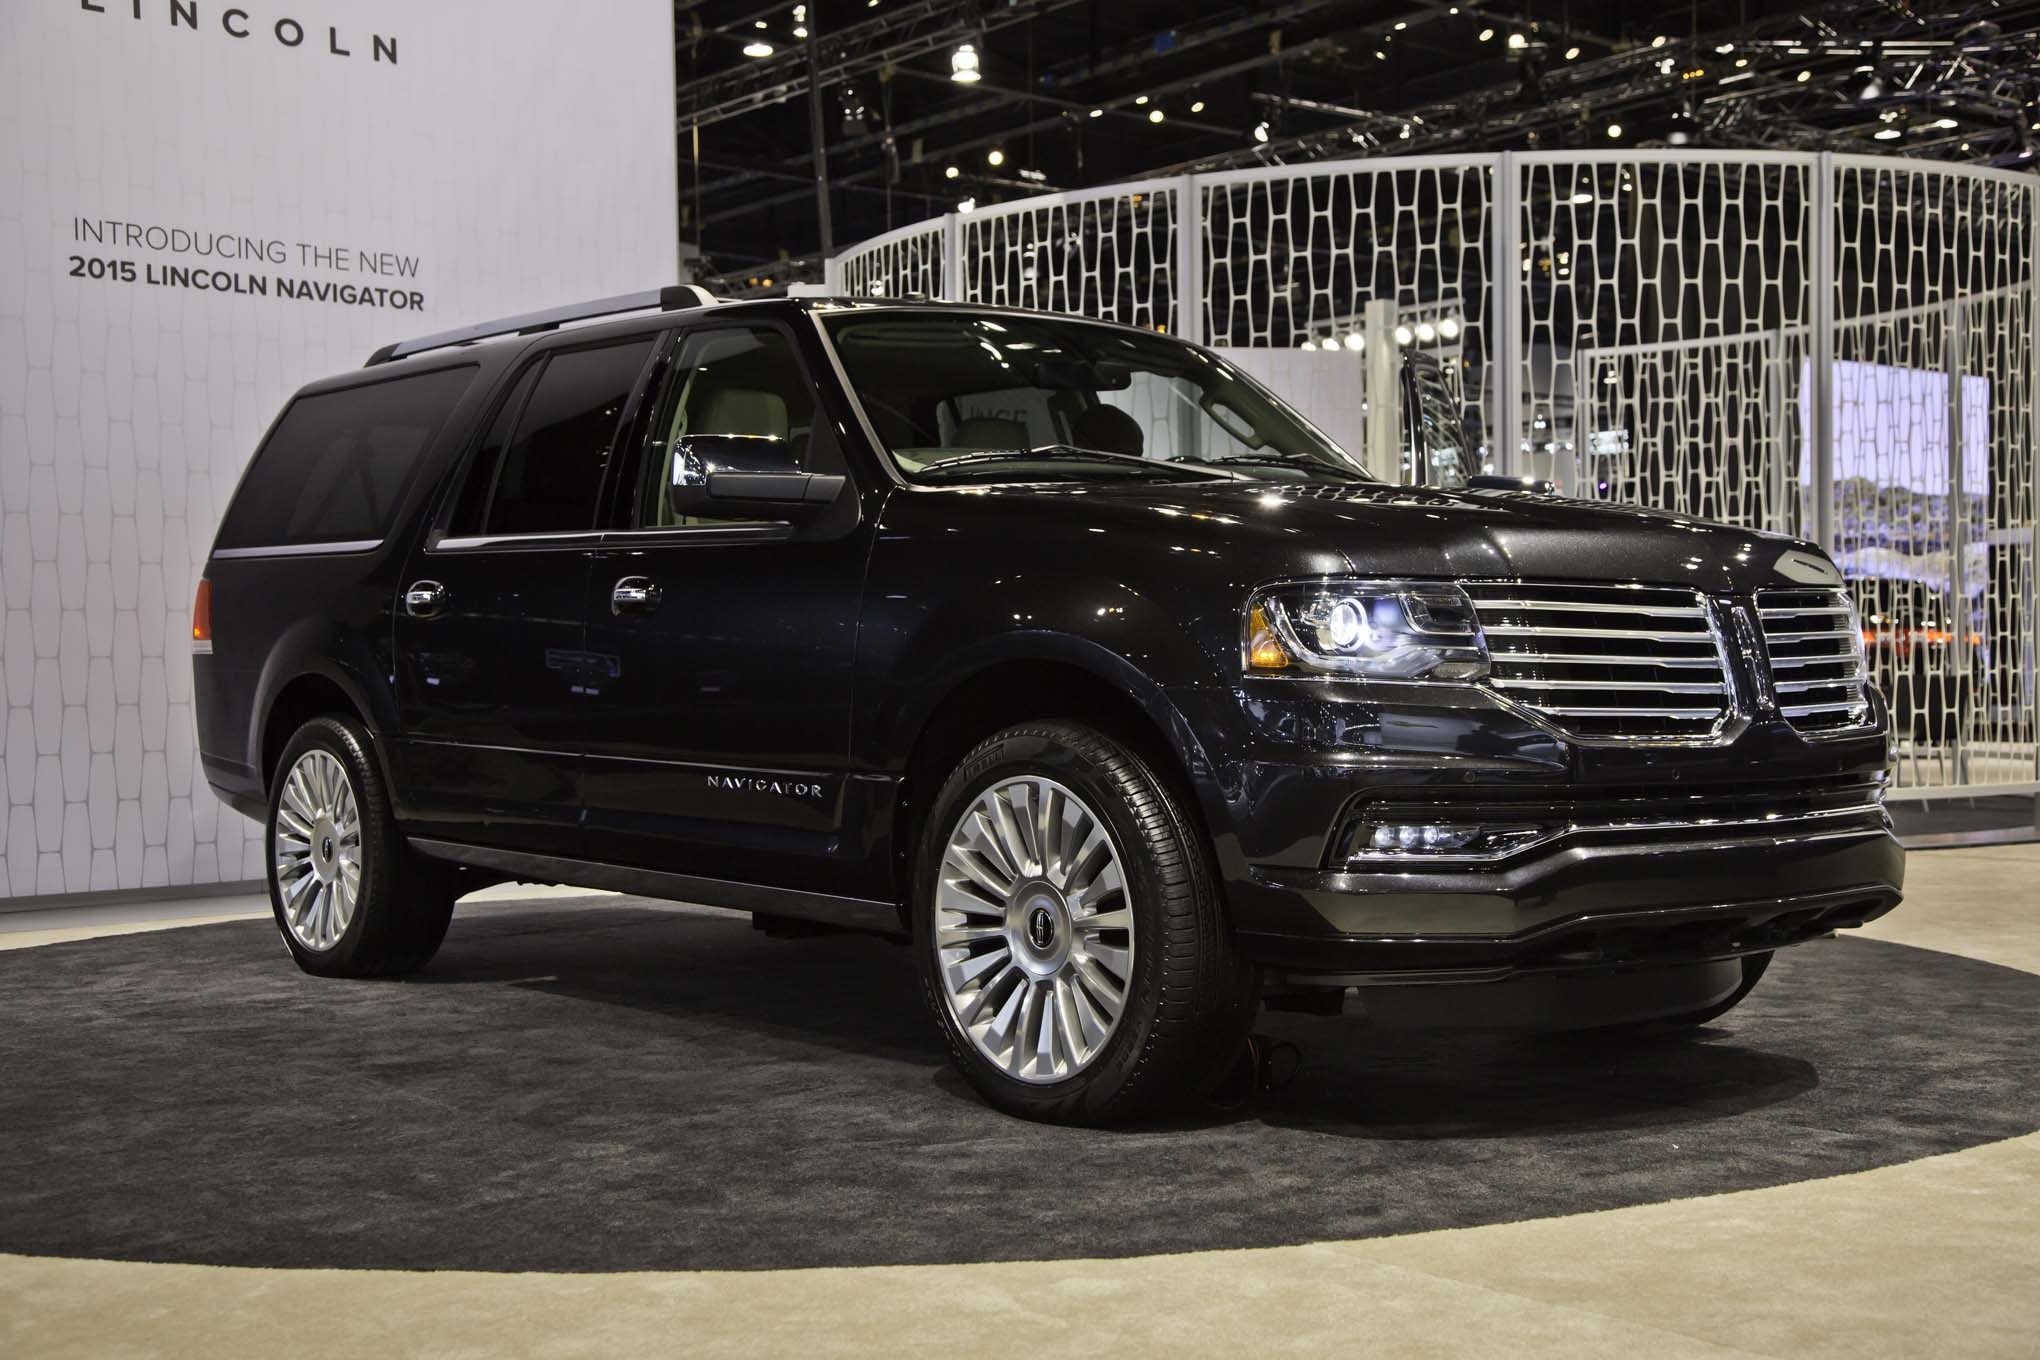 2015 Lincoln Navigator First Look - Motor Trend